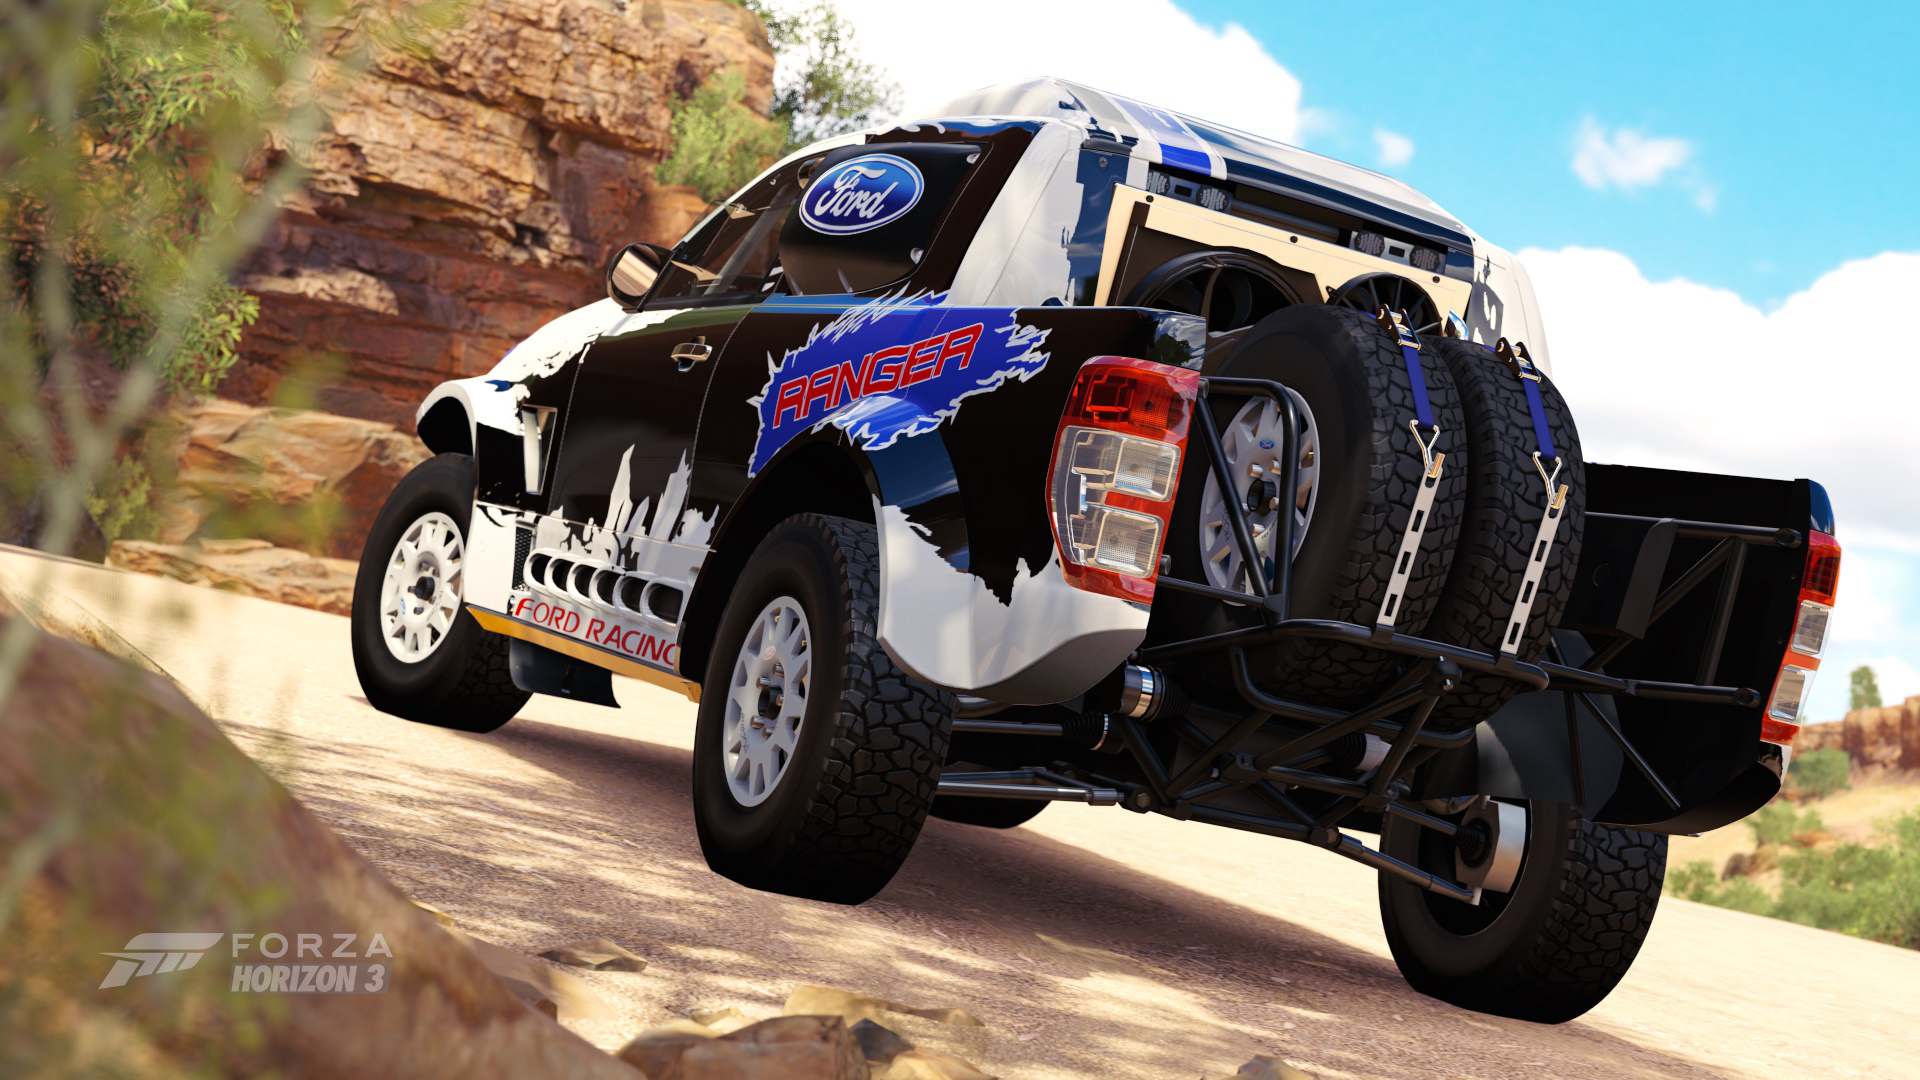 Forza Horizon 3 Cars 1992 Ford F 150 Engine Parts Diagram 4 6l 2014 Ranger T6 Rally Raid Photo By Dj Lime